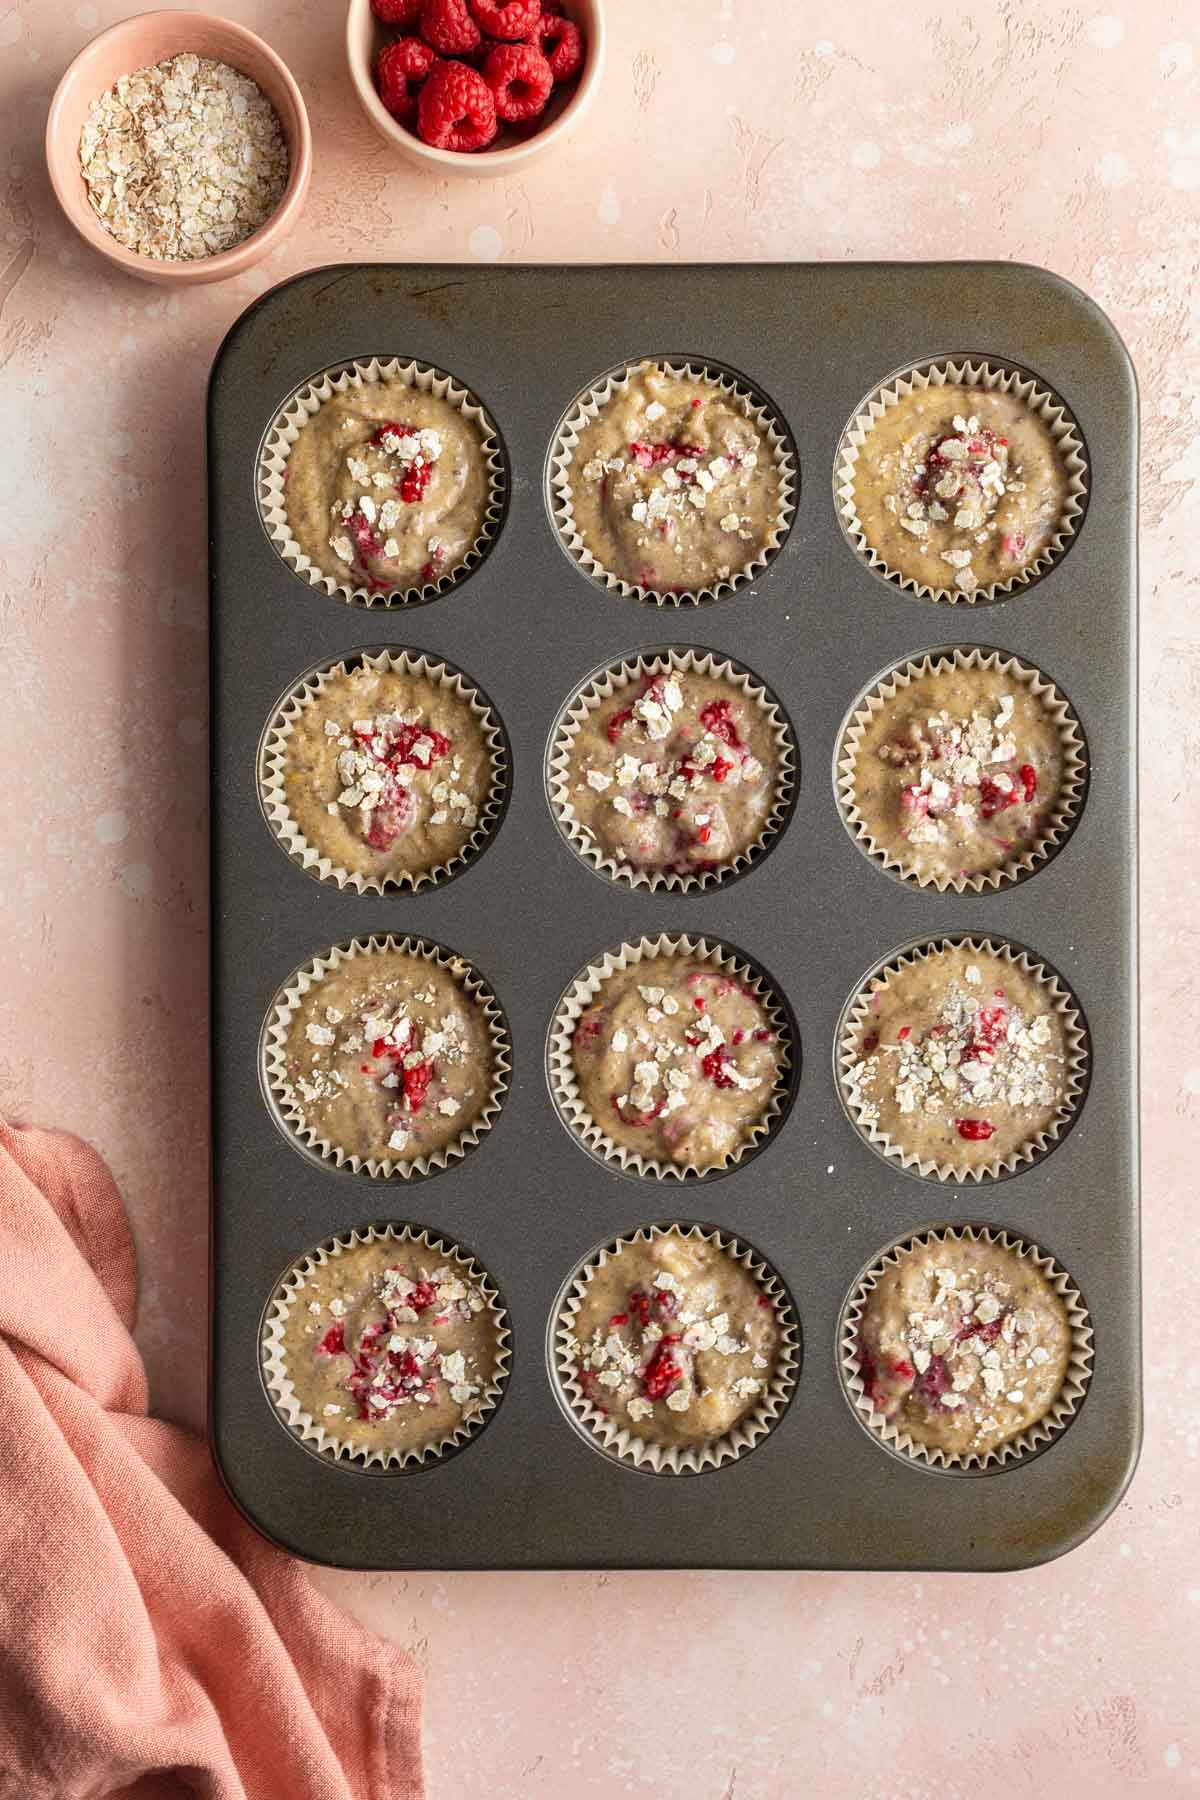 Muffin batter divided into a 12-cup muffin pan.